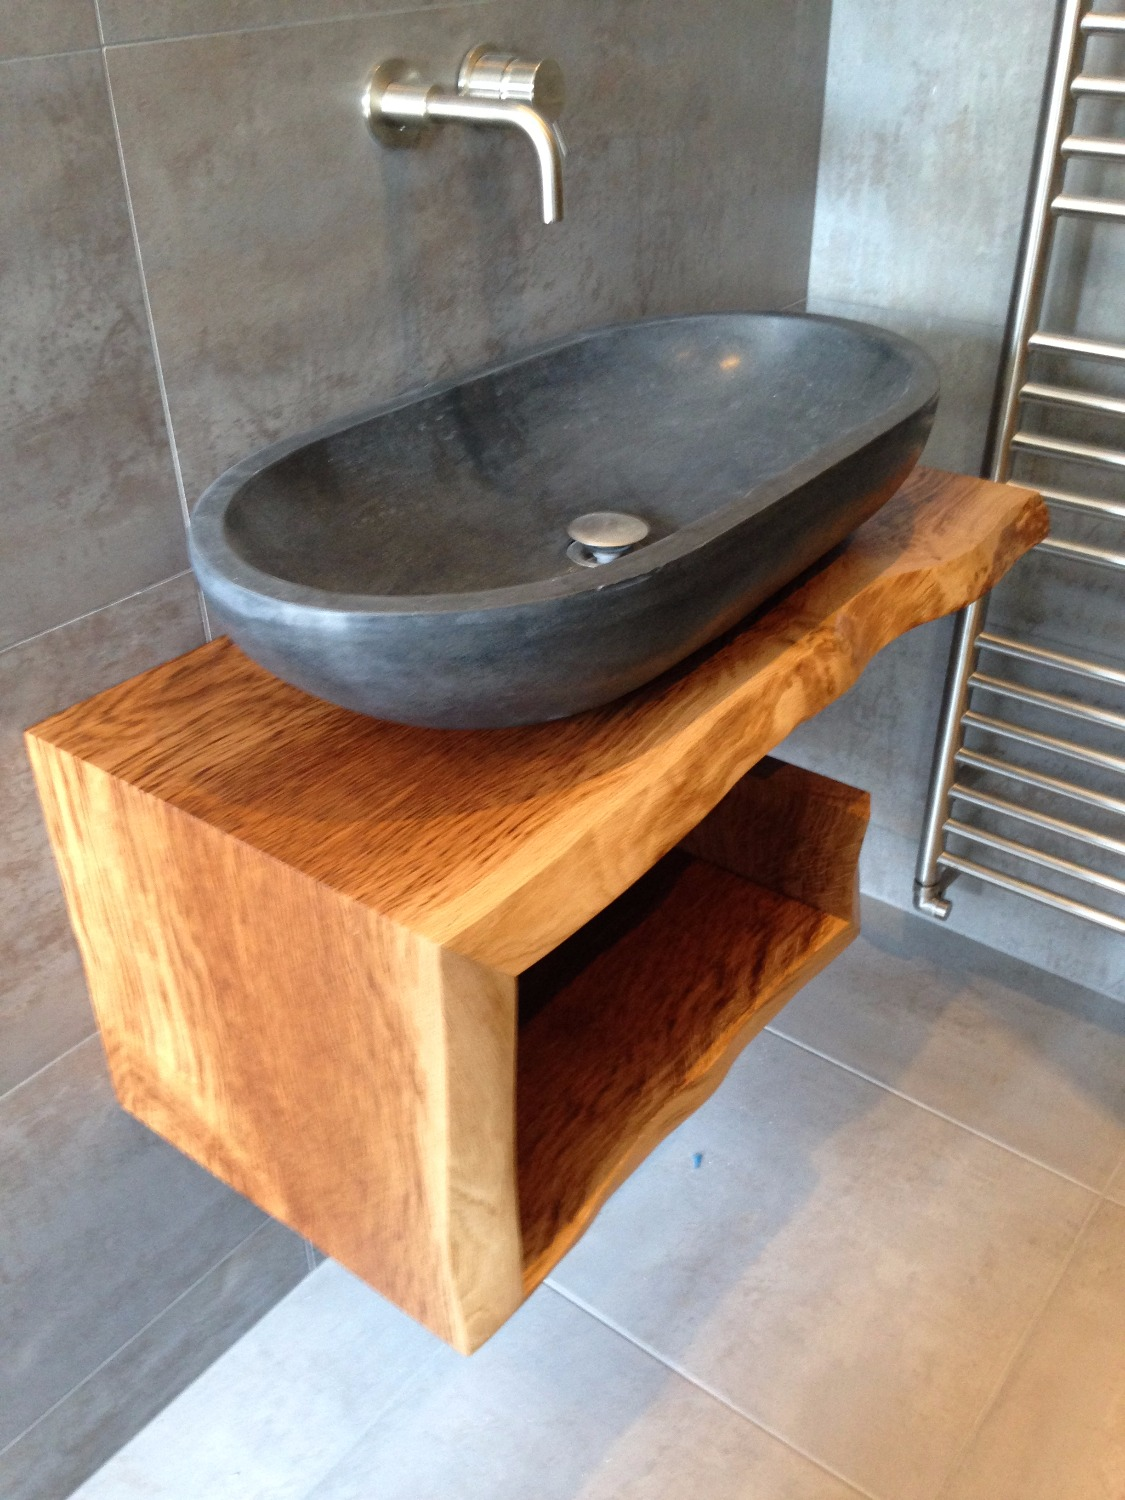 Oak sink unit